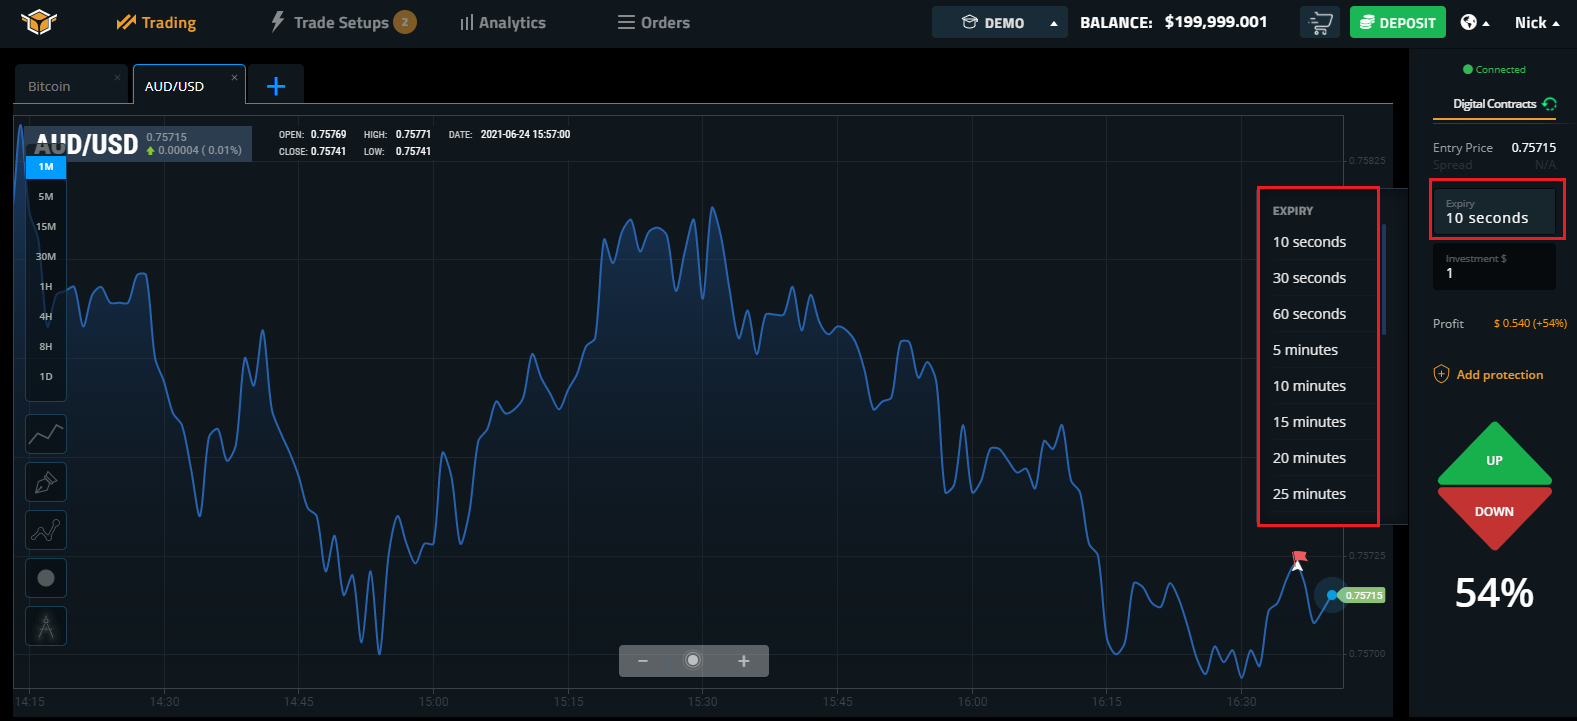 How to Register and Trade Binary Option at Spectre.ai